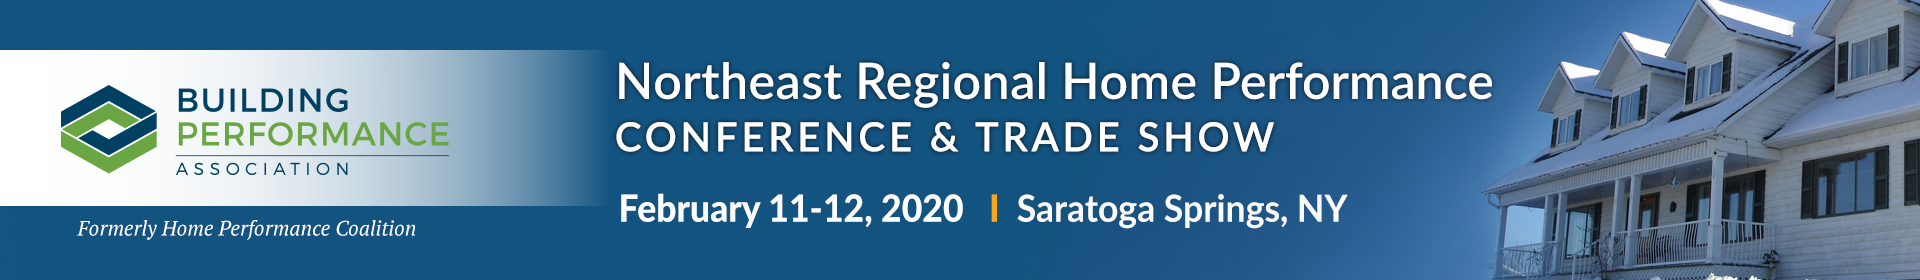 2020 Northeast Regional Home Performance Conference Event Banner